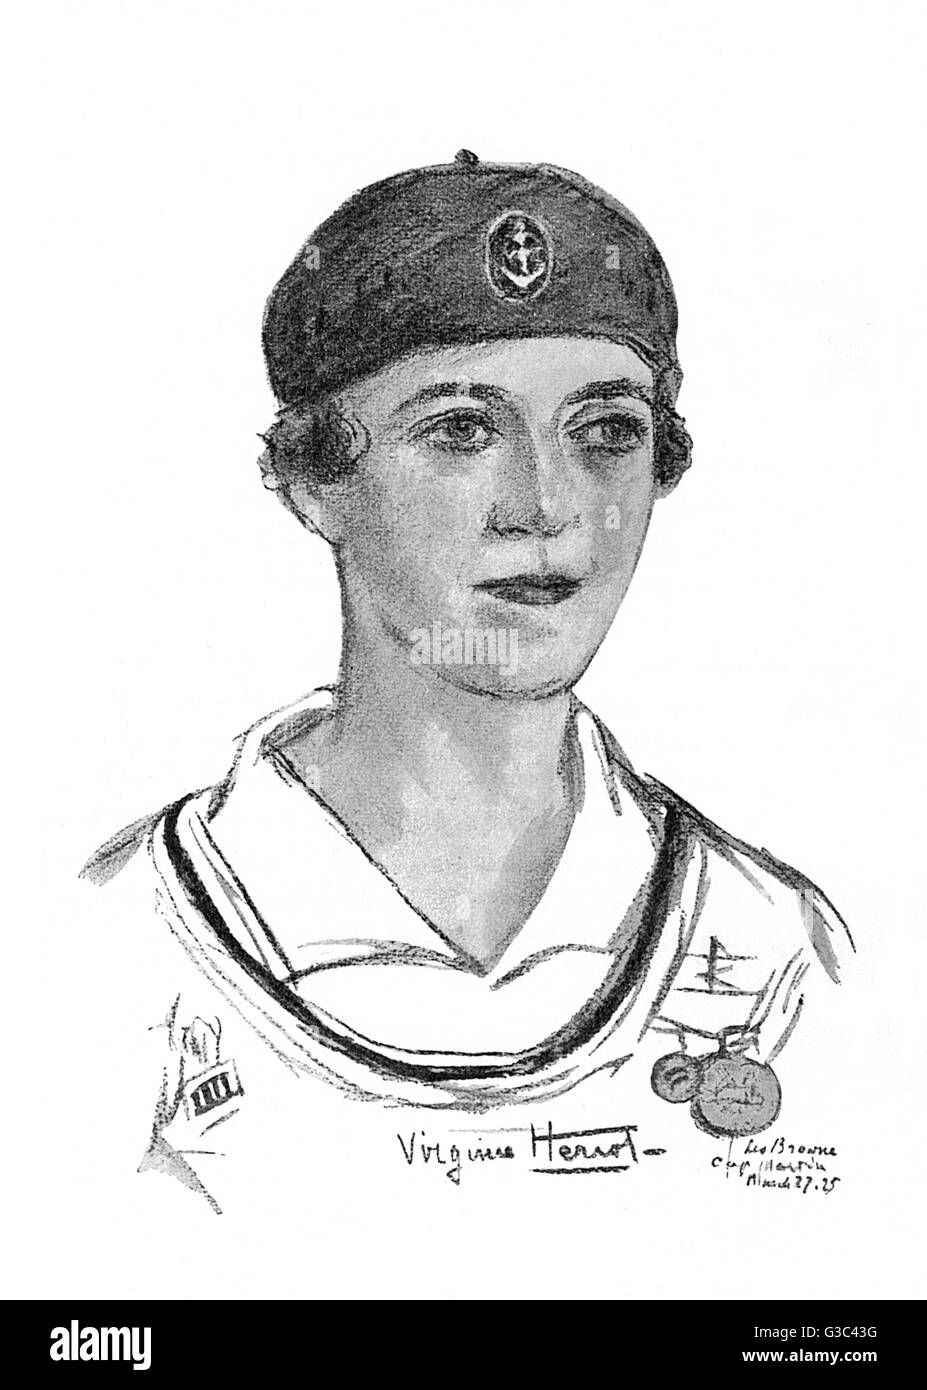 Virginie Claire Desiree Marie Heriot (1890-1932), French yachtswoman who won a gold medal in the 1928 Summer Olympics - Stock Image